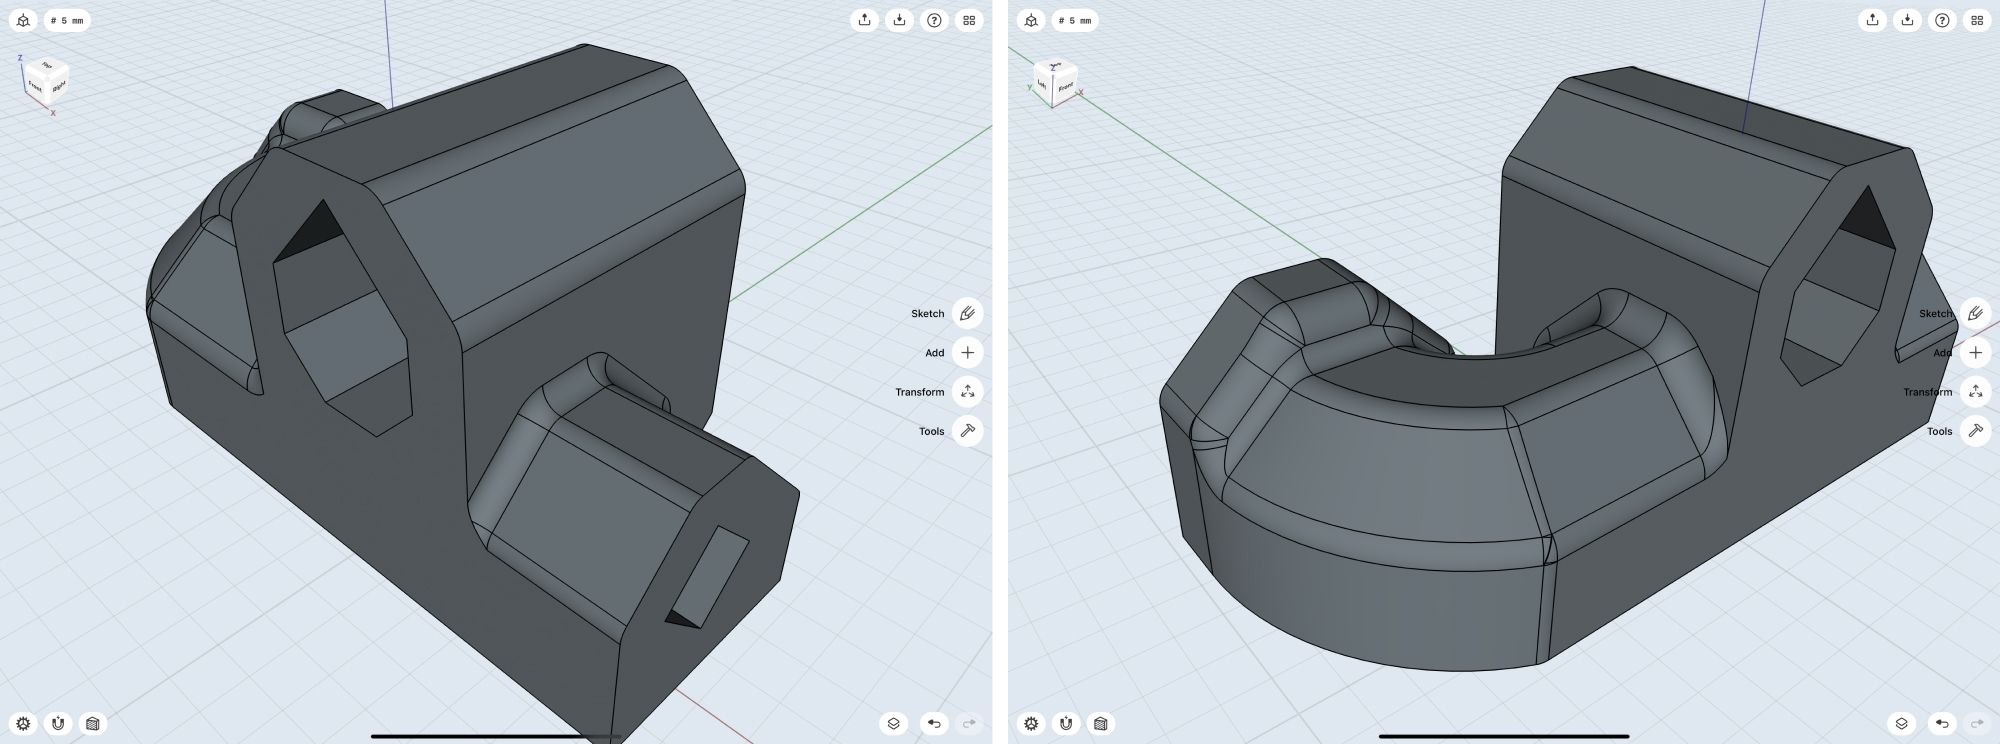 Black and Decker housing model in shapr3D